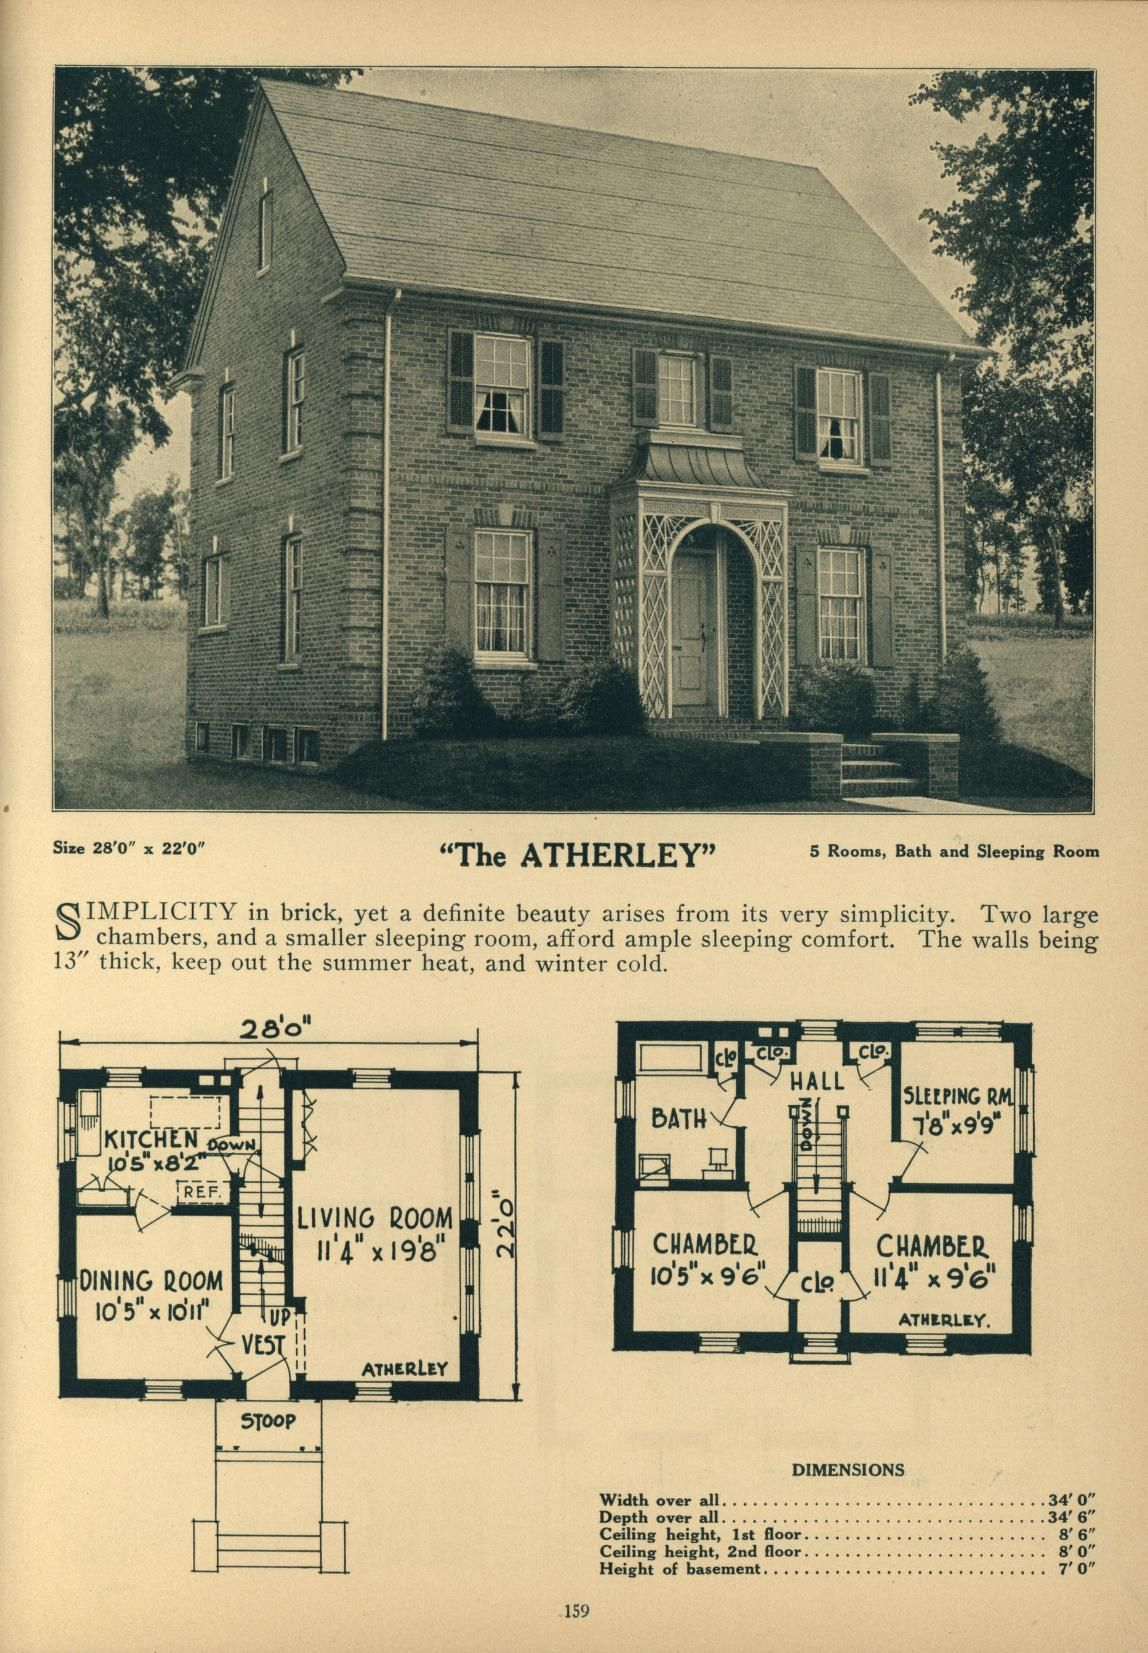 Deyo S Book Of Homes Warren V Deyo Free Download Borrow And Streaming Internet Archive Colonial House Plans Vintage House Plans Cottage Floor Plans